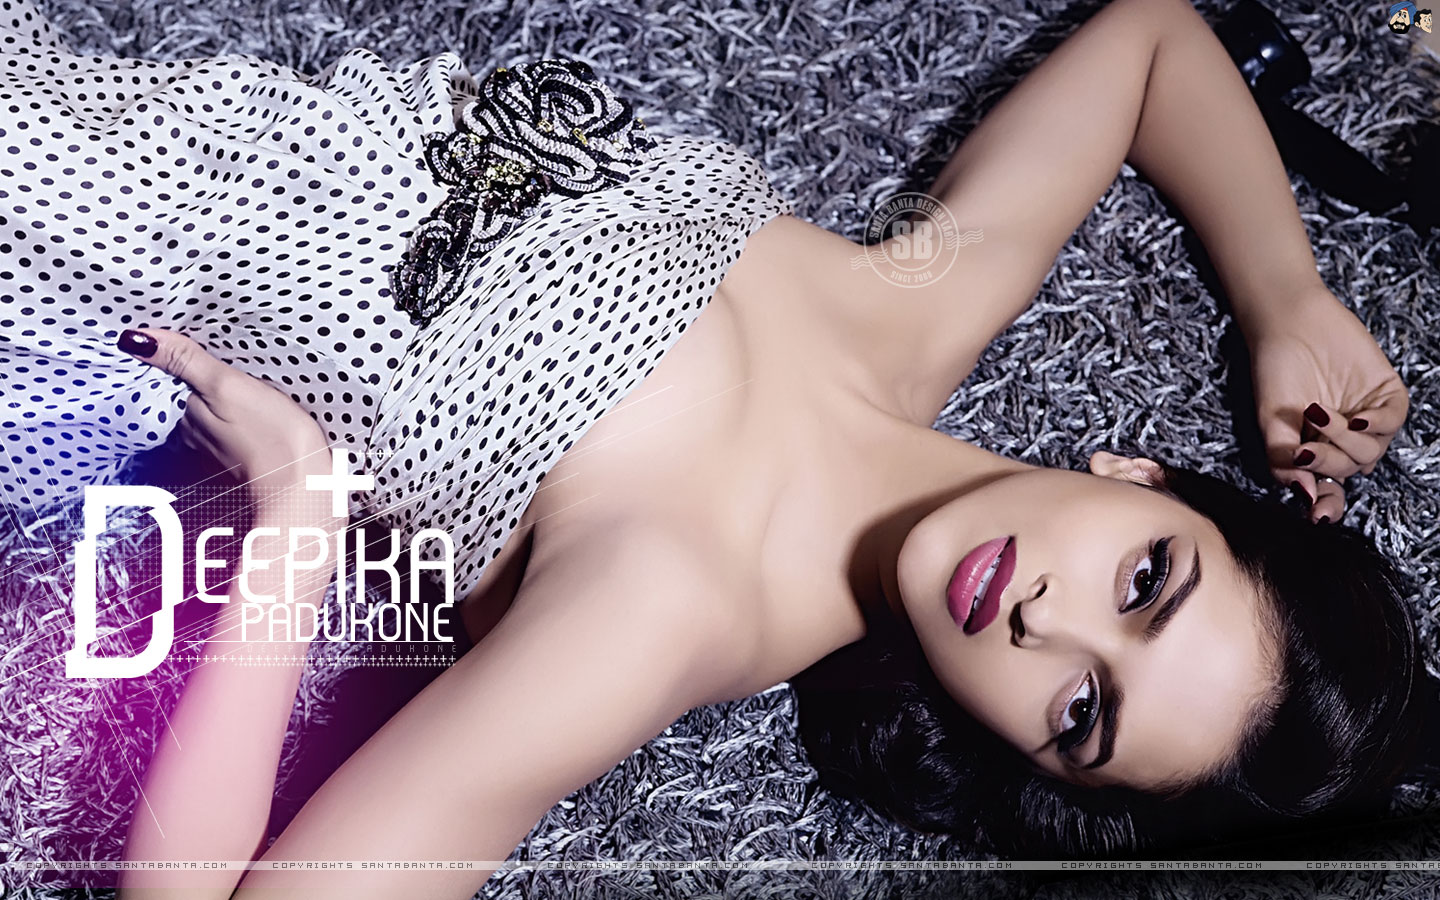 Deepika Padukone Wallapapers Collection: Lucy Nine: Deepika Padukone HD Wallpapers, Latest 2011